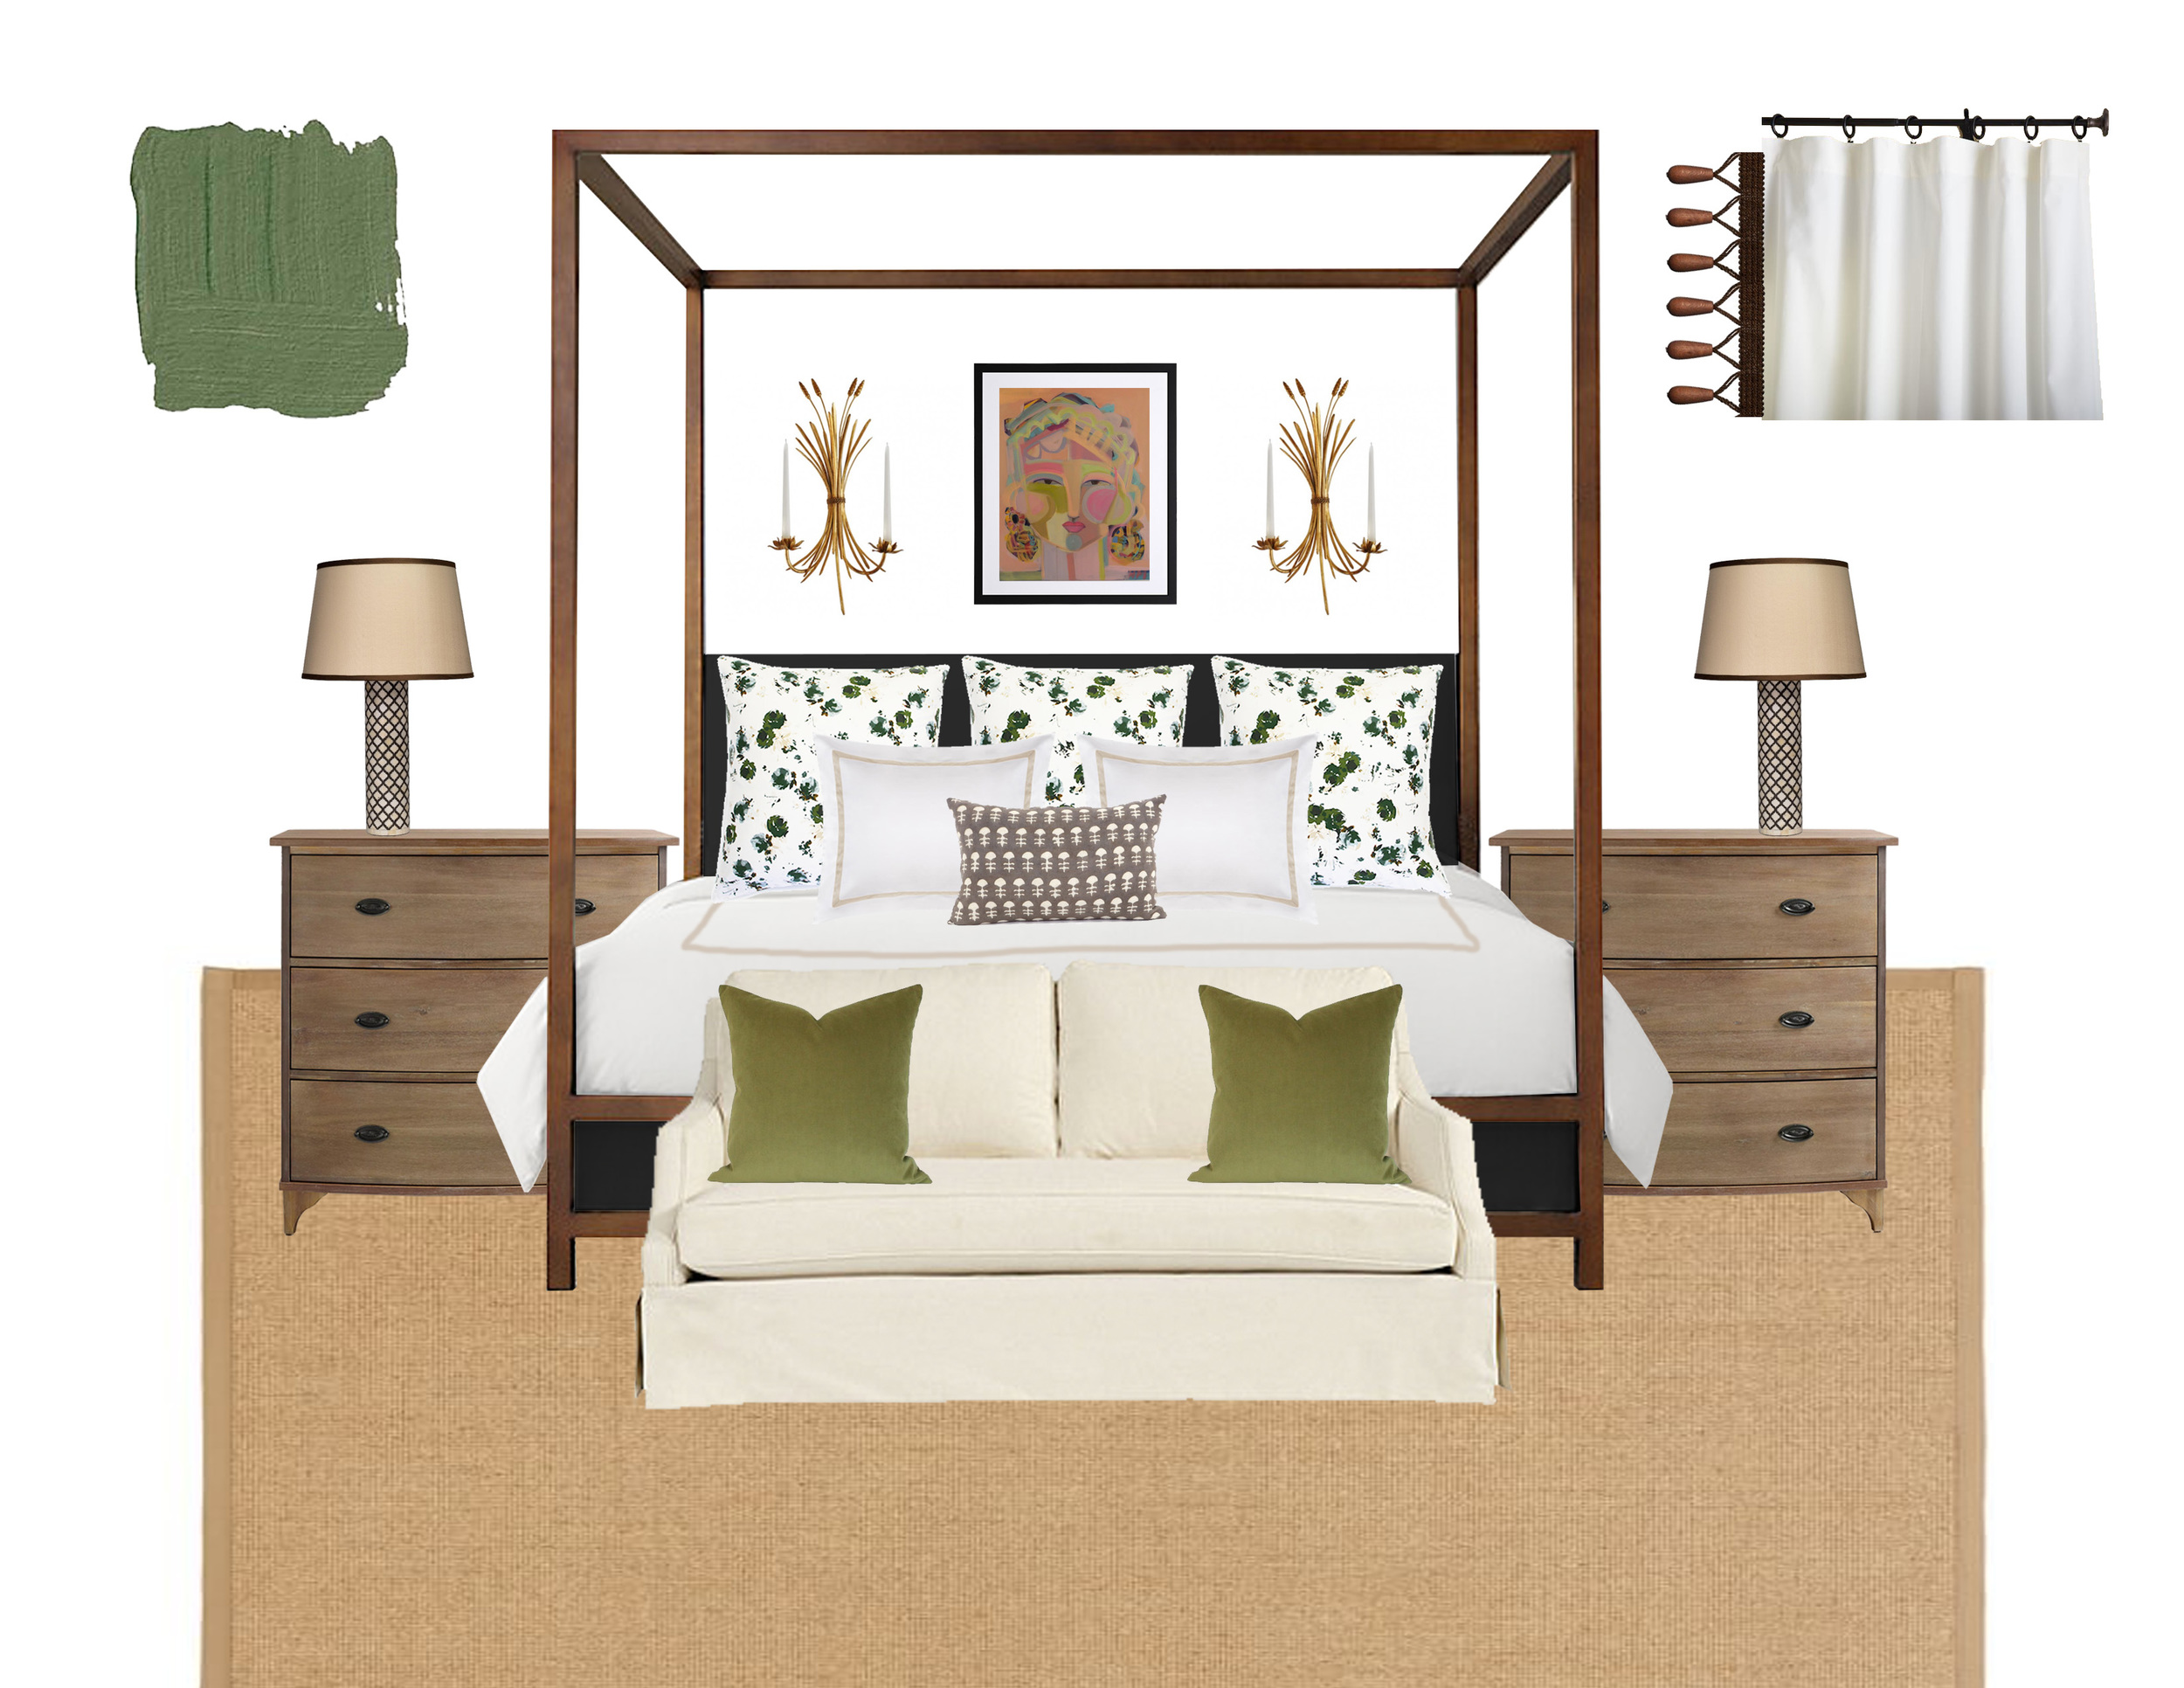 Links:  bedding     beige throw pillow     green throw pillows     bed     nightstands    l ove seat     lamps     sconces     art     curtains     rug     paint